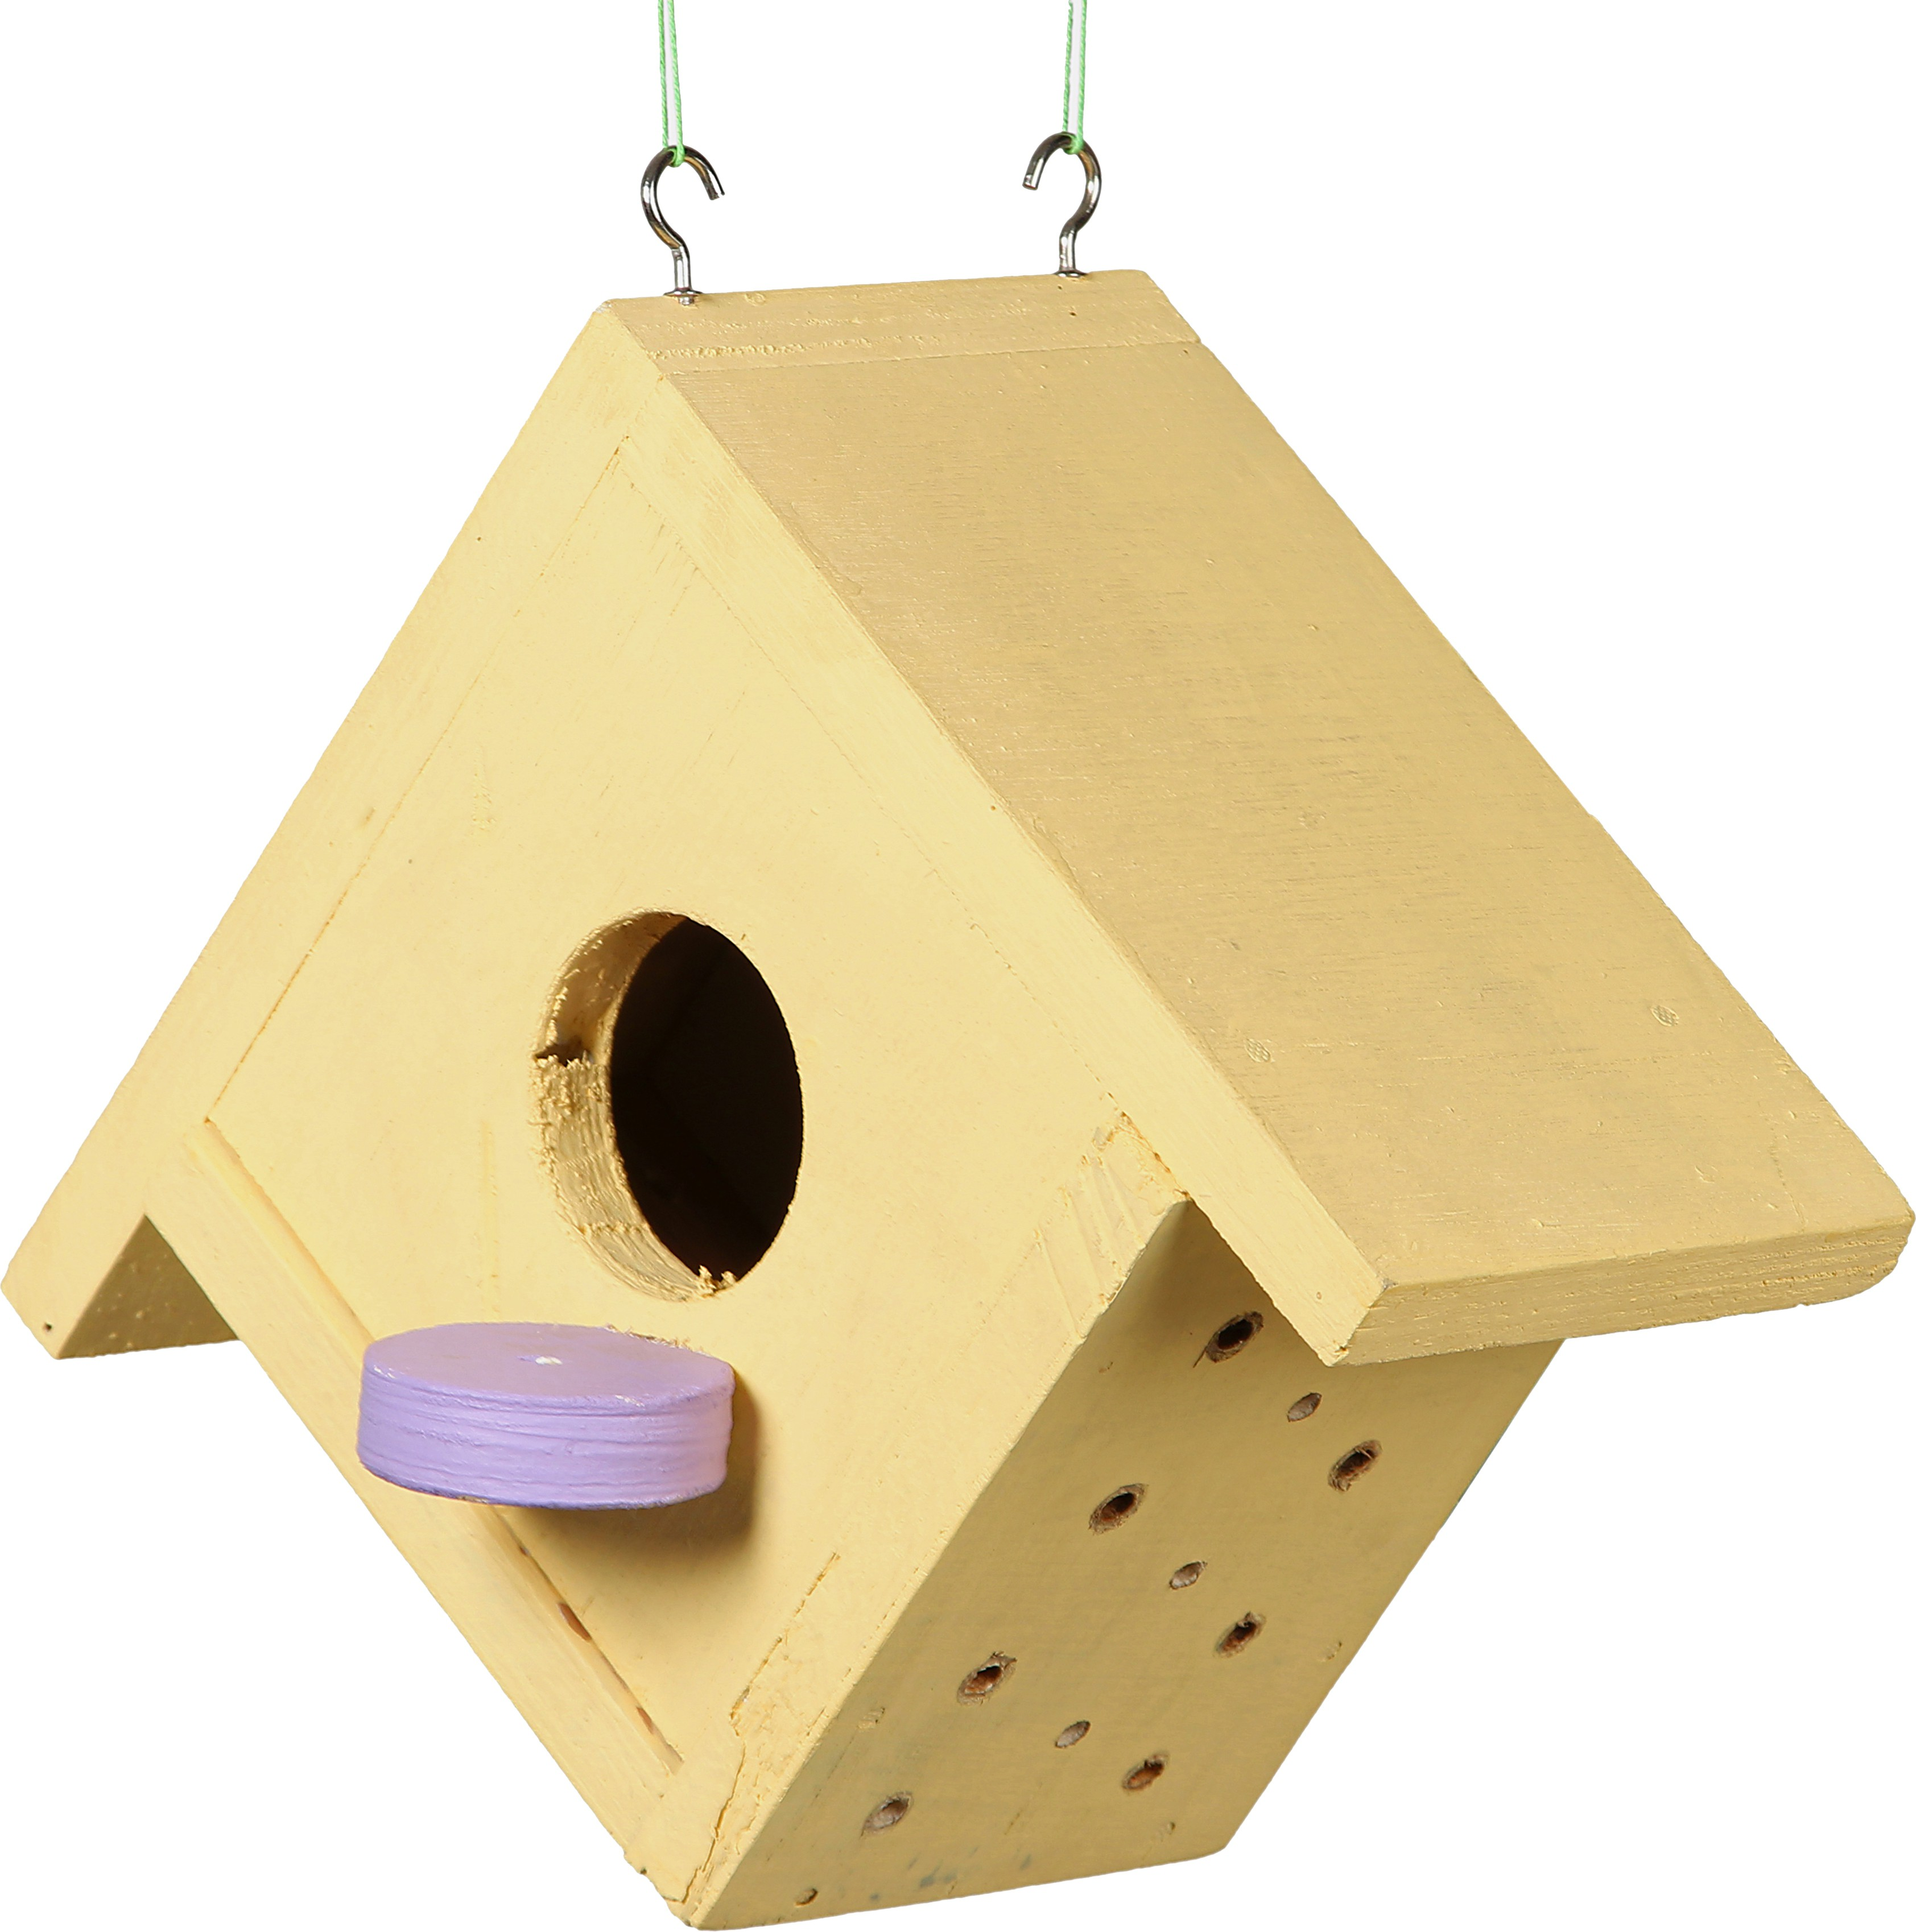 View Comfy CE/BIRDHOUSE/1 Bird House(Hanging, Wall Mounting, Tree Mounting) Furniture (Comfy)